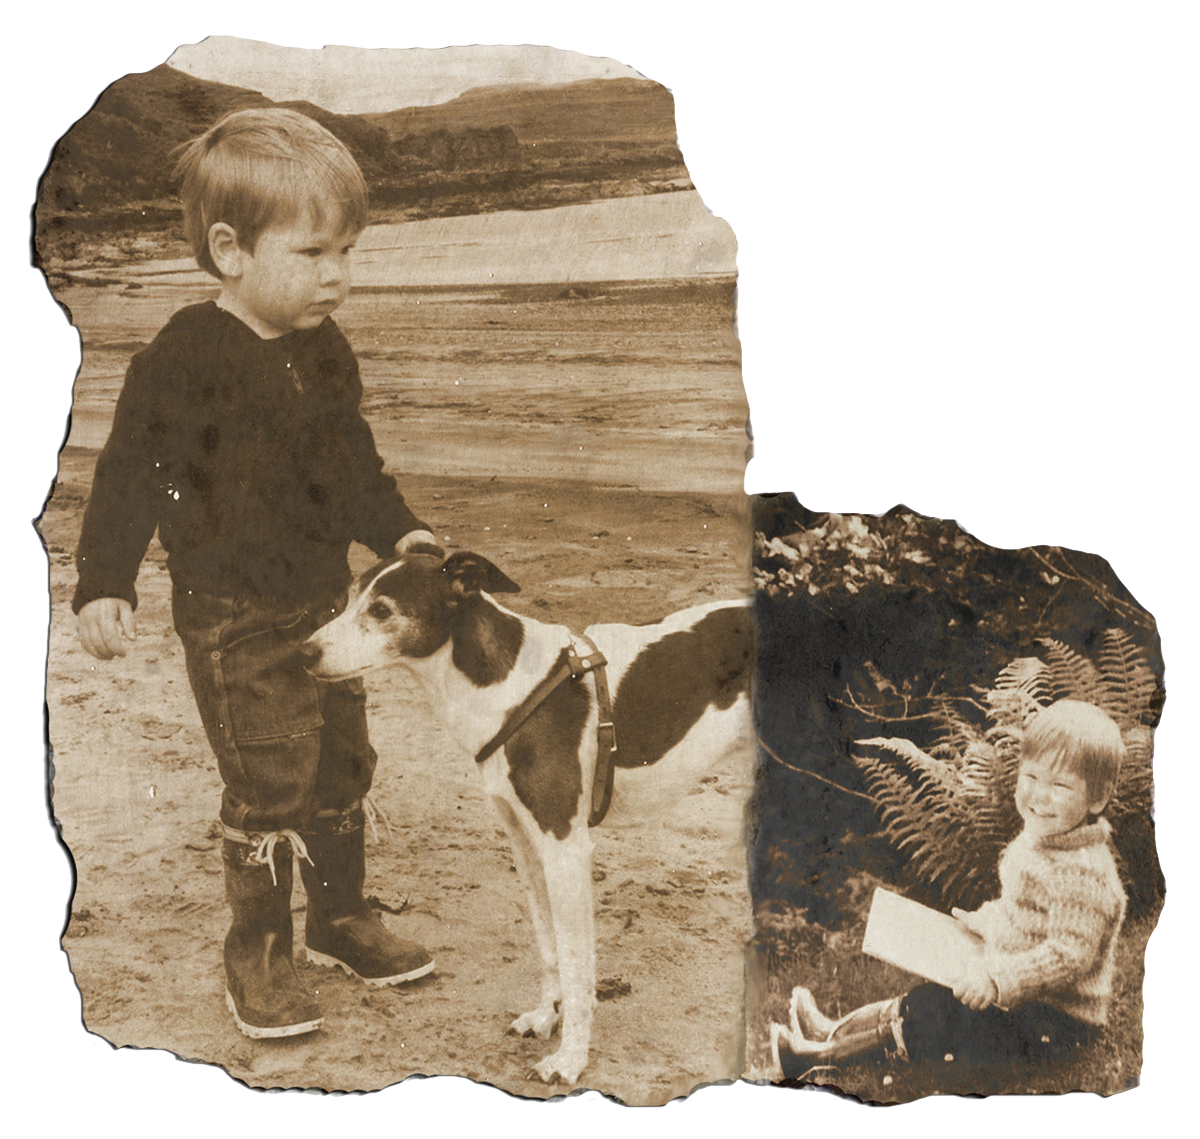 Two photos of Louis Barabbas as a child